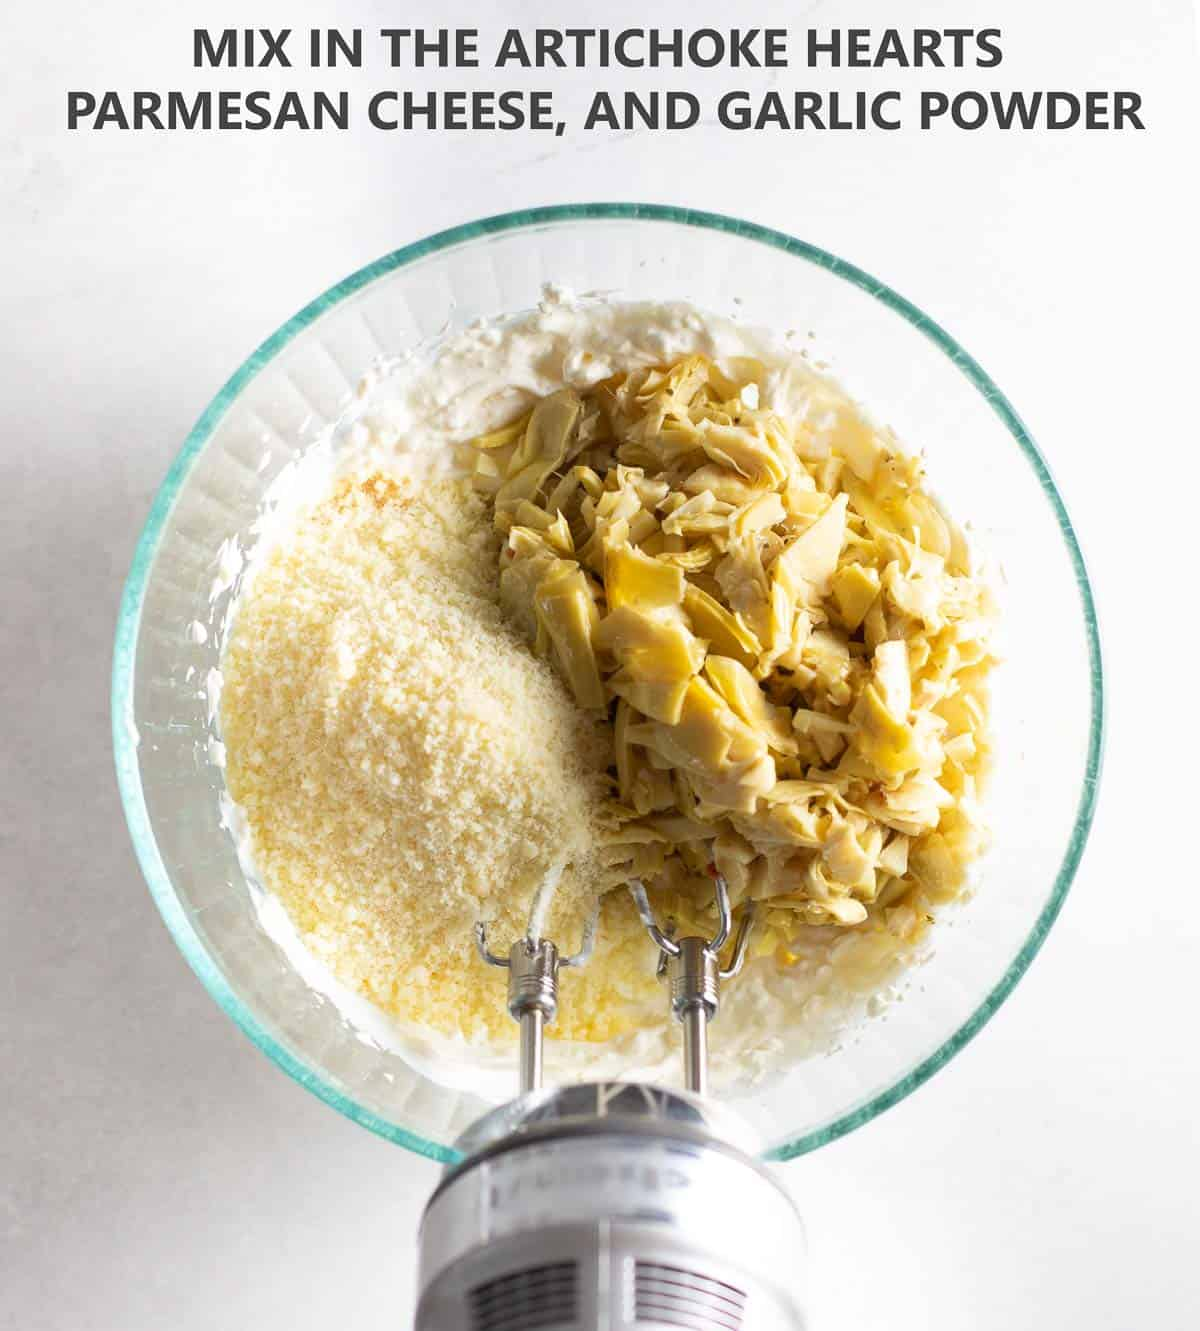 adding parmesan cheese and artichoke hearts to glass bowl to mix together